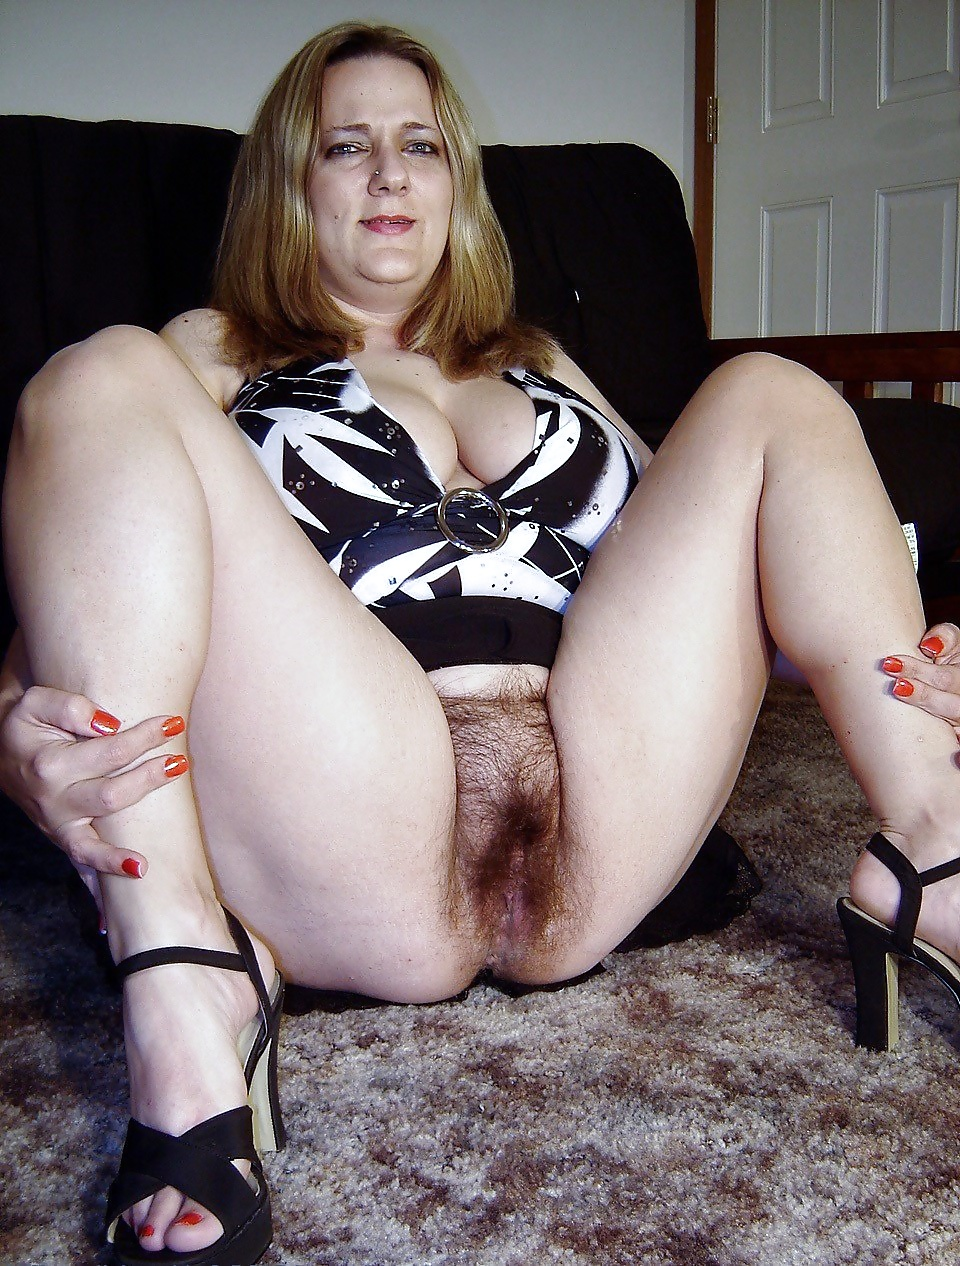 Hairy bbw pussy remarkable, valuable